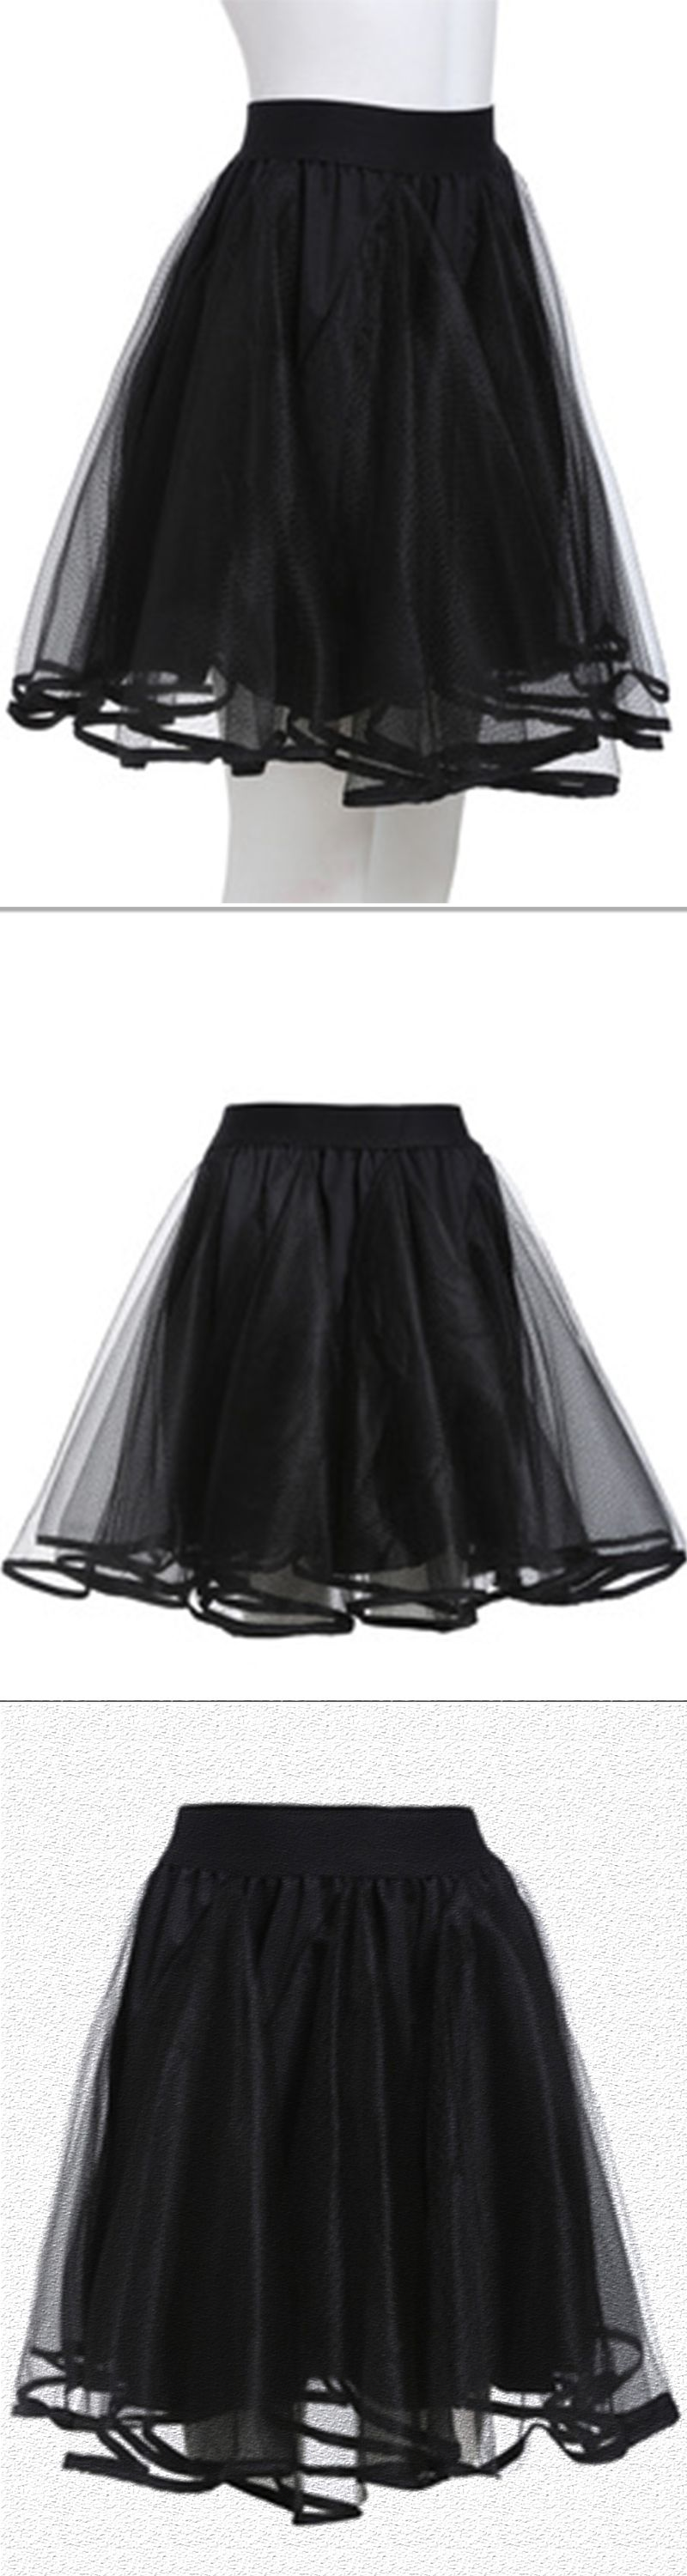 beautiful mesh skirt this skirt is made by organza with elastic in